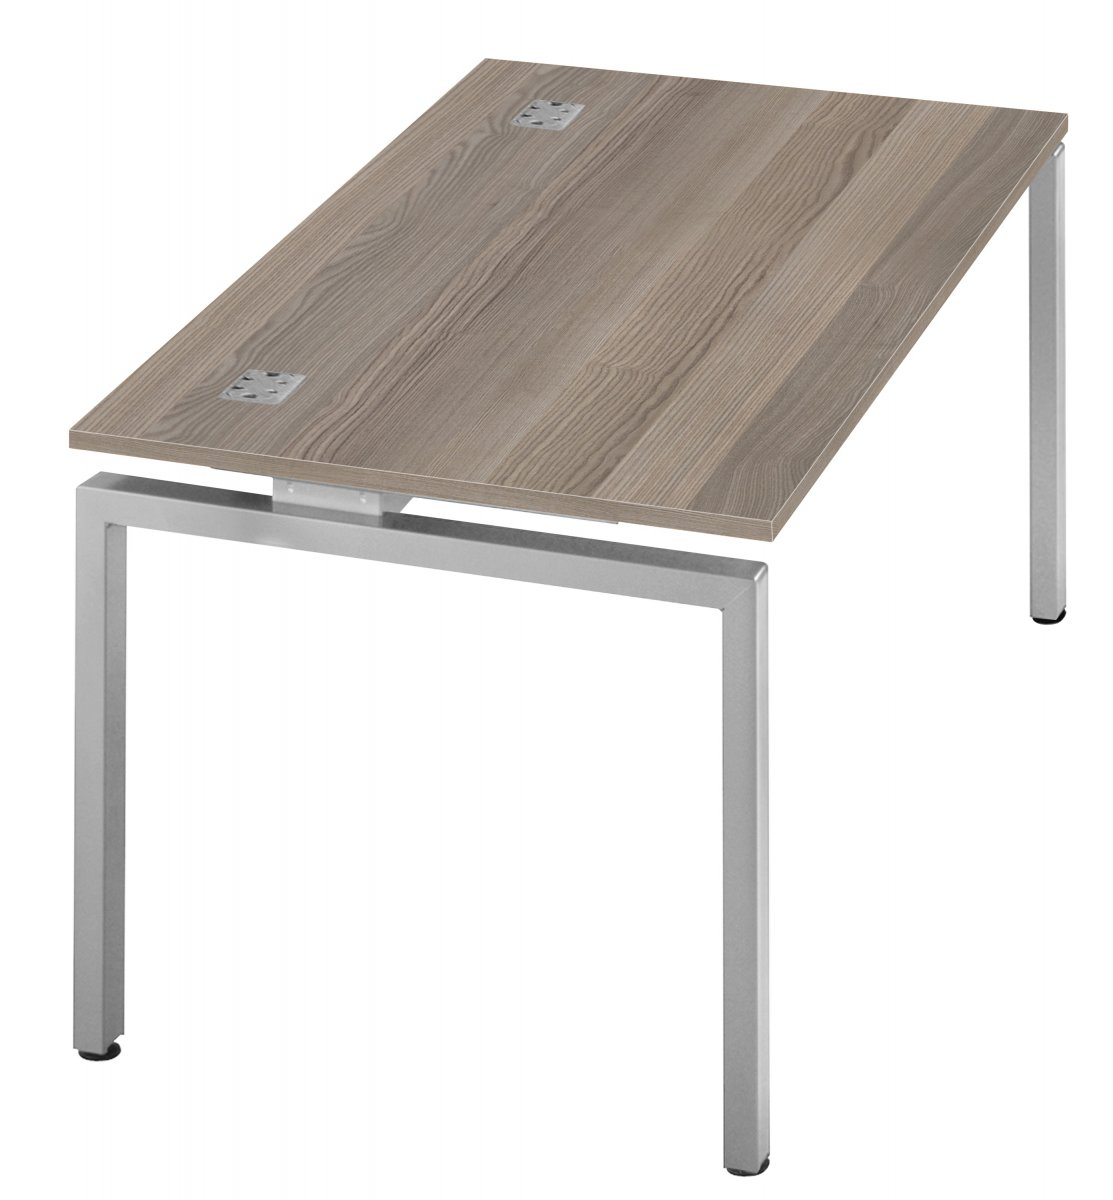 Fraction Bench Single 160 Starter Workstation - Grey Oak